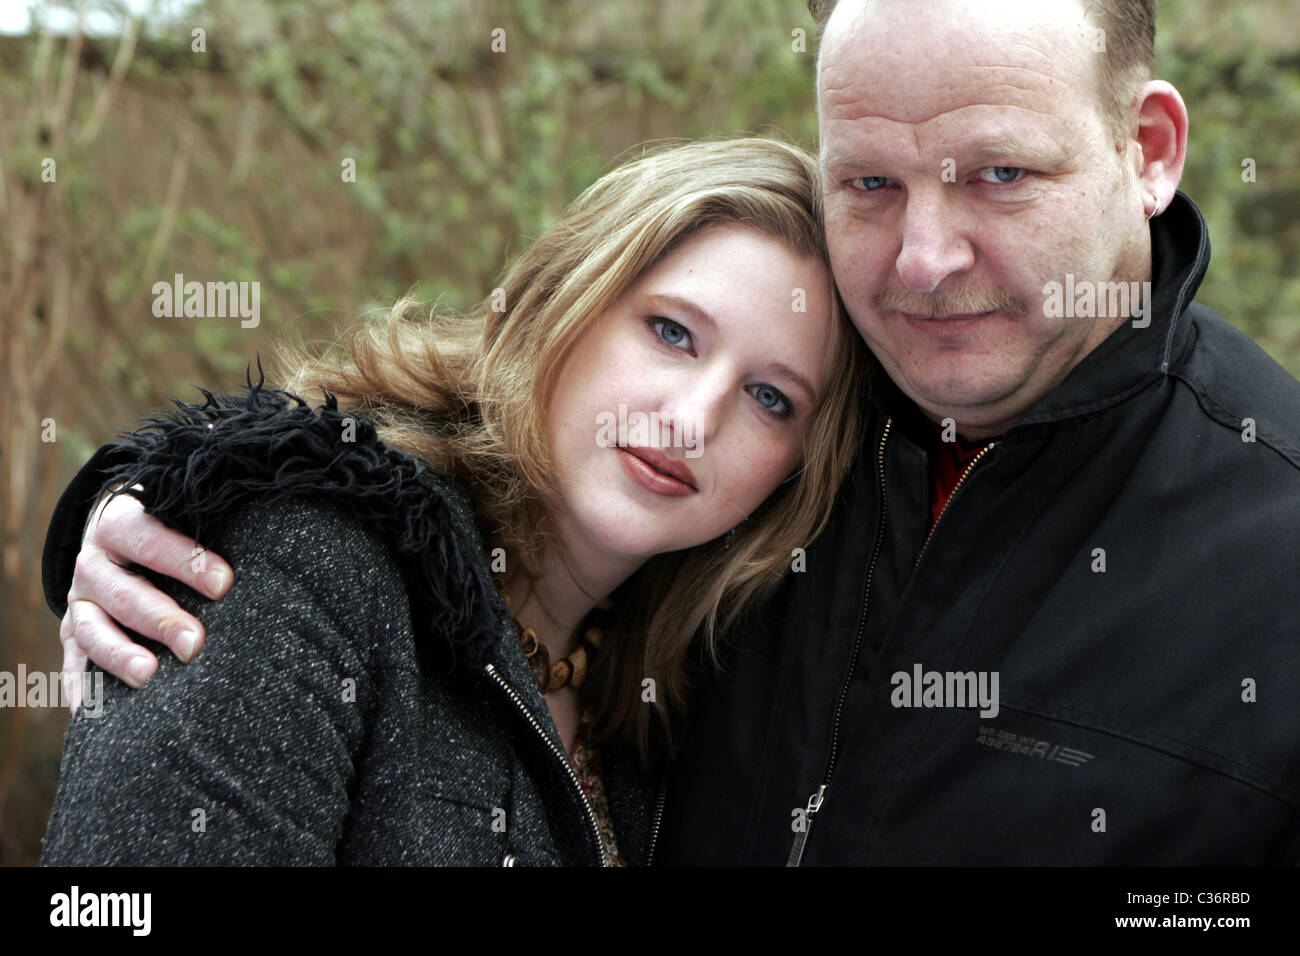 Portrait of an older man hugging a younger woman - Stock Image